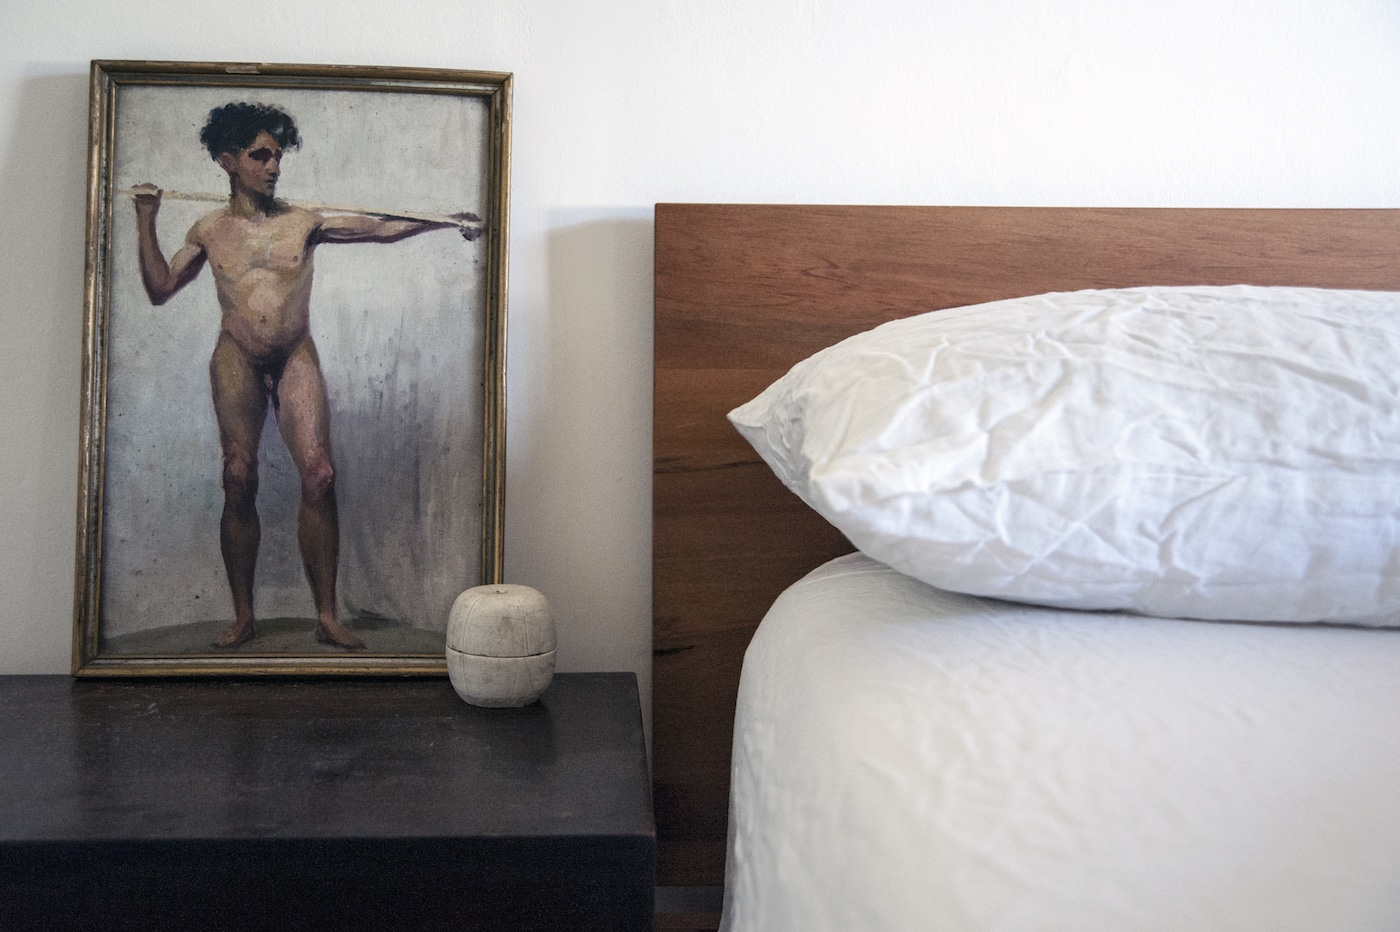 Timber bed made with white Weft Textiles pillow and doona cover